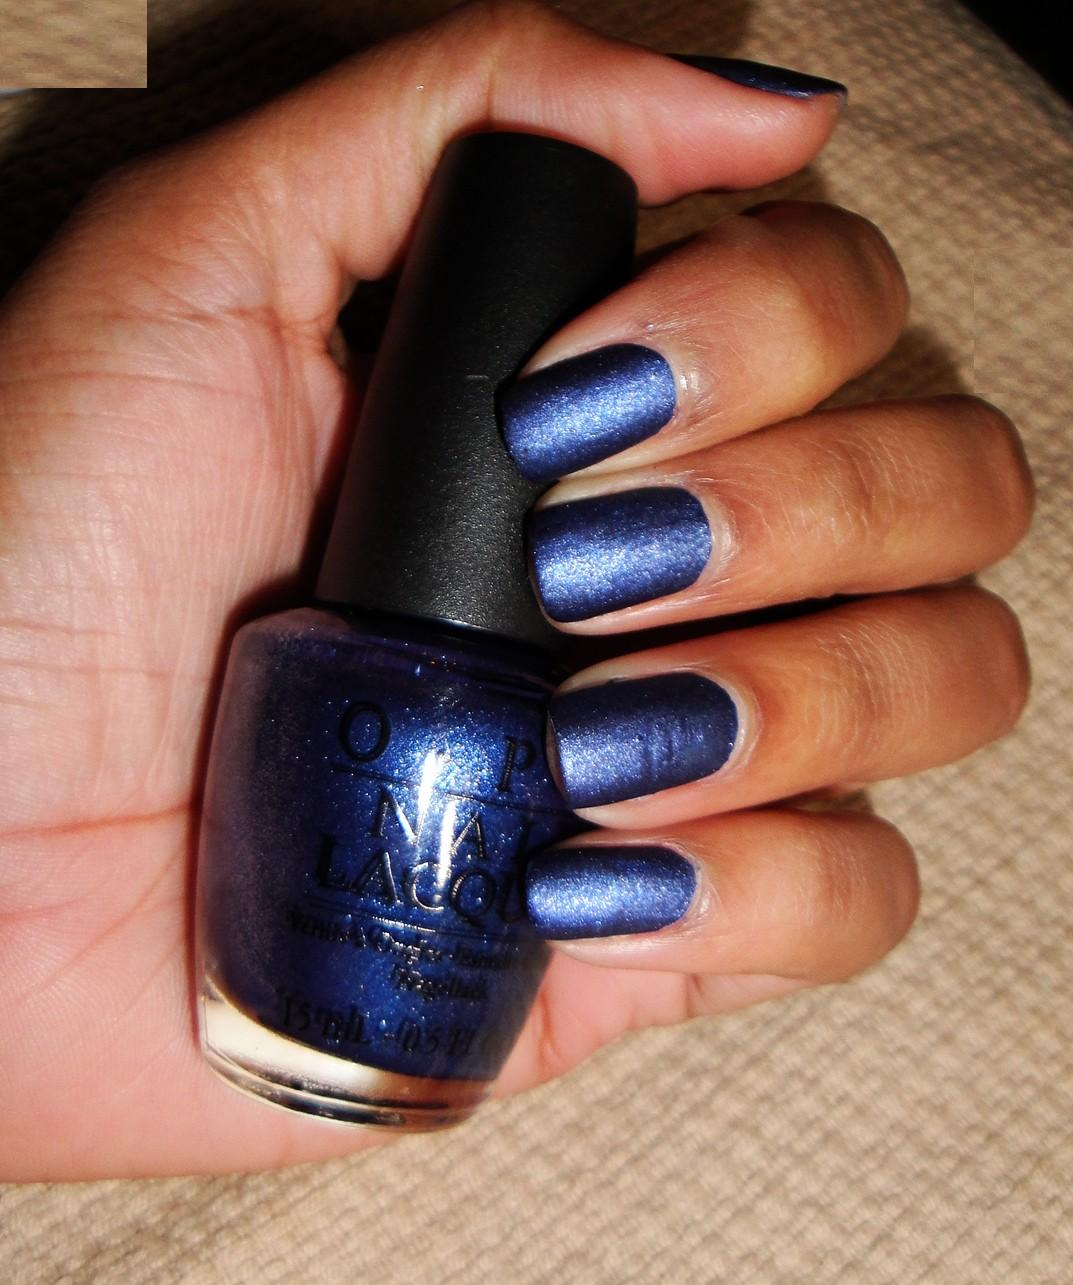 Suede Nail Polish: The Fancy Face: OPI Russian Navy Suede NAILS